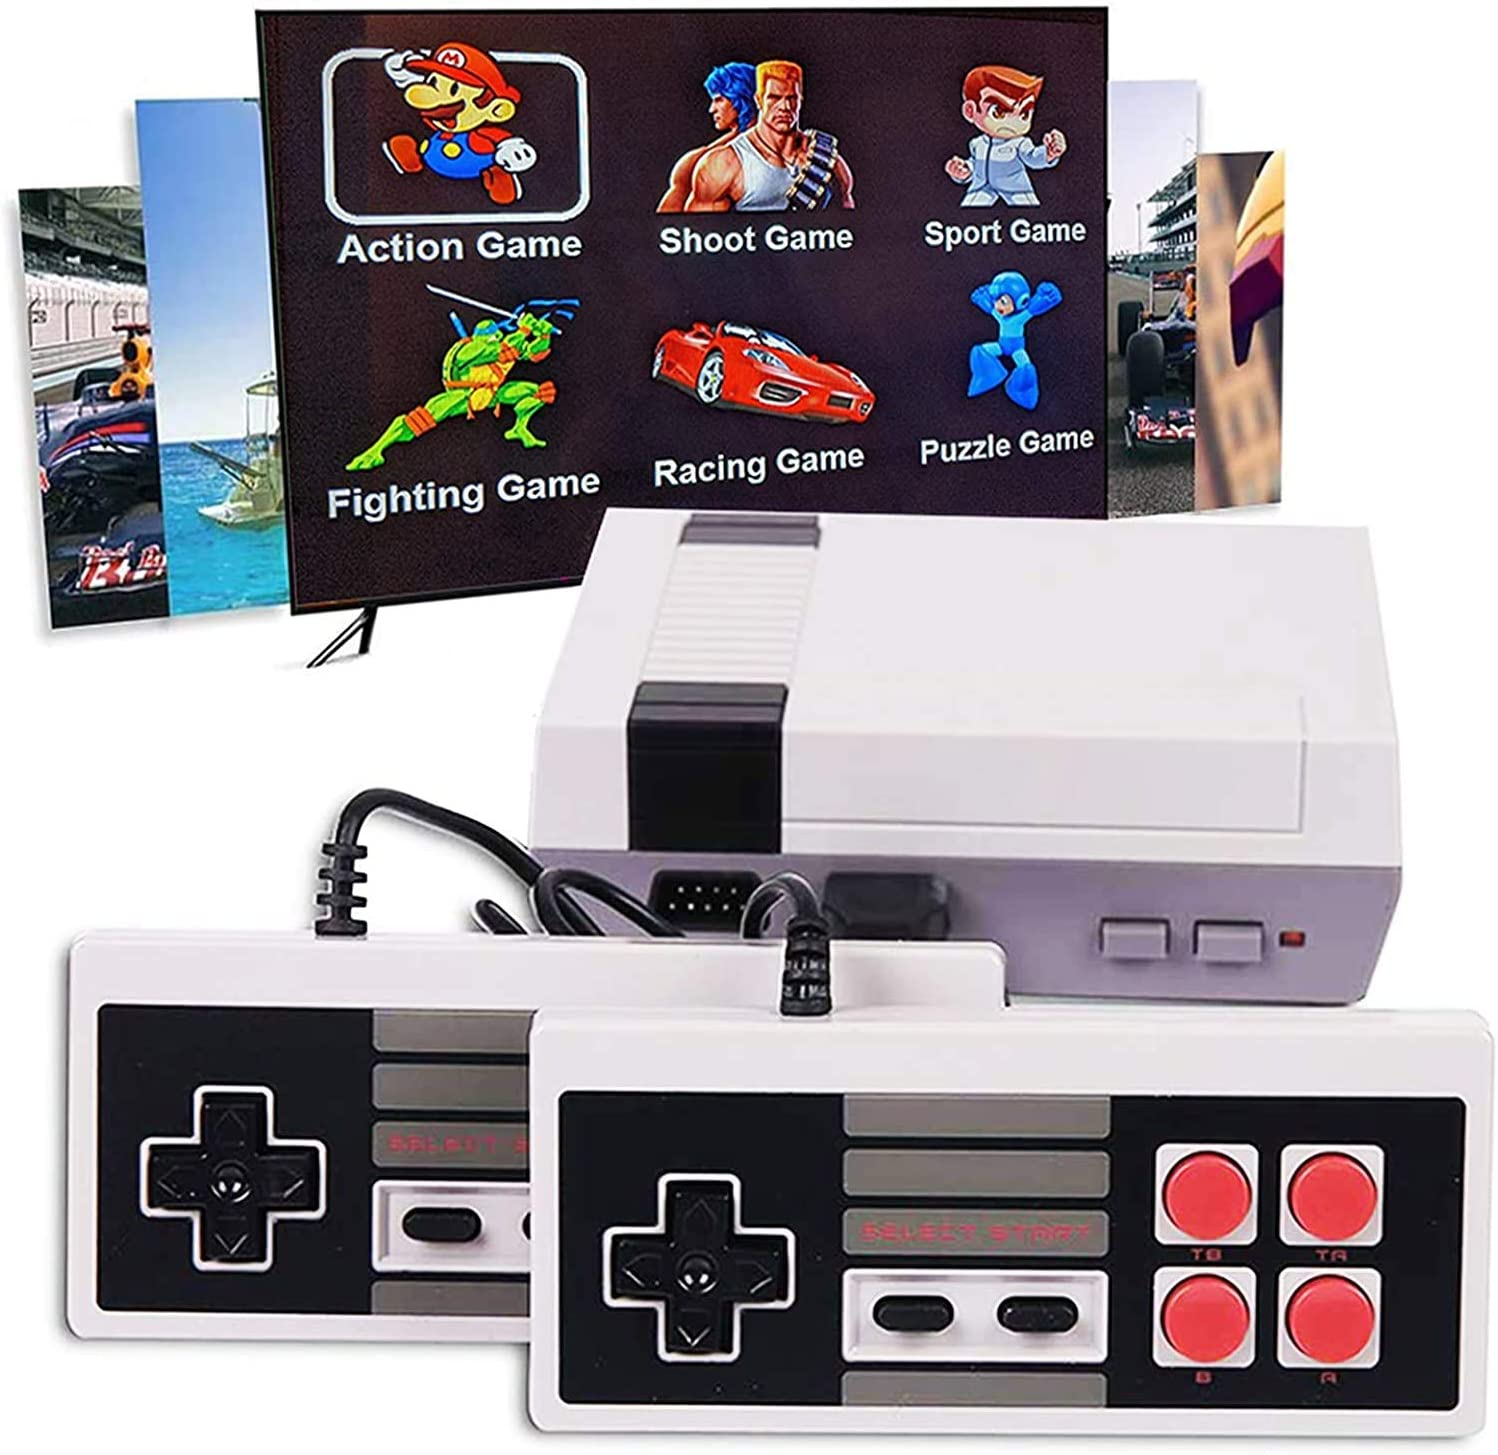 620 Retro Classic Video Game Console AV Output Mini Console 620 in 1 Built-in Plug and Play Video Games,is an Ideal Gift Choice for Children and Adults (Set 02): Toys & Games